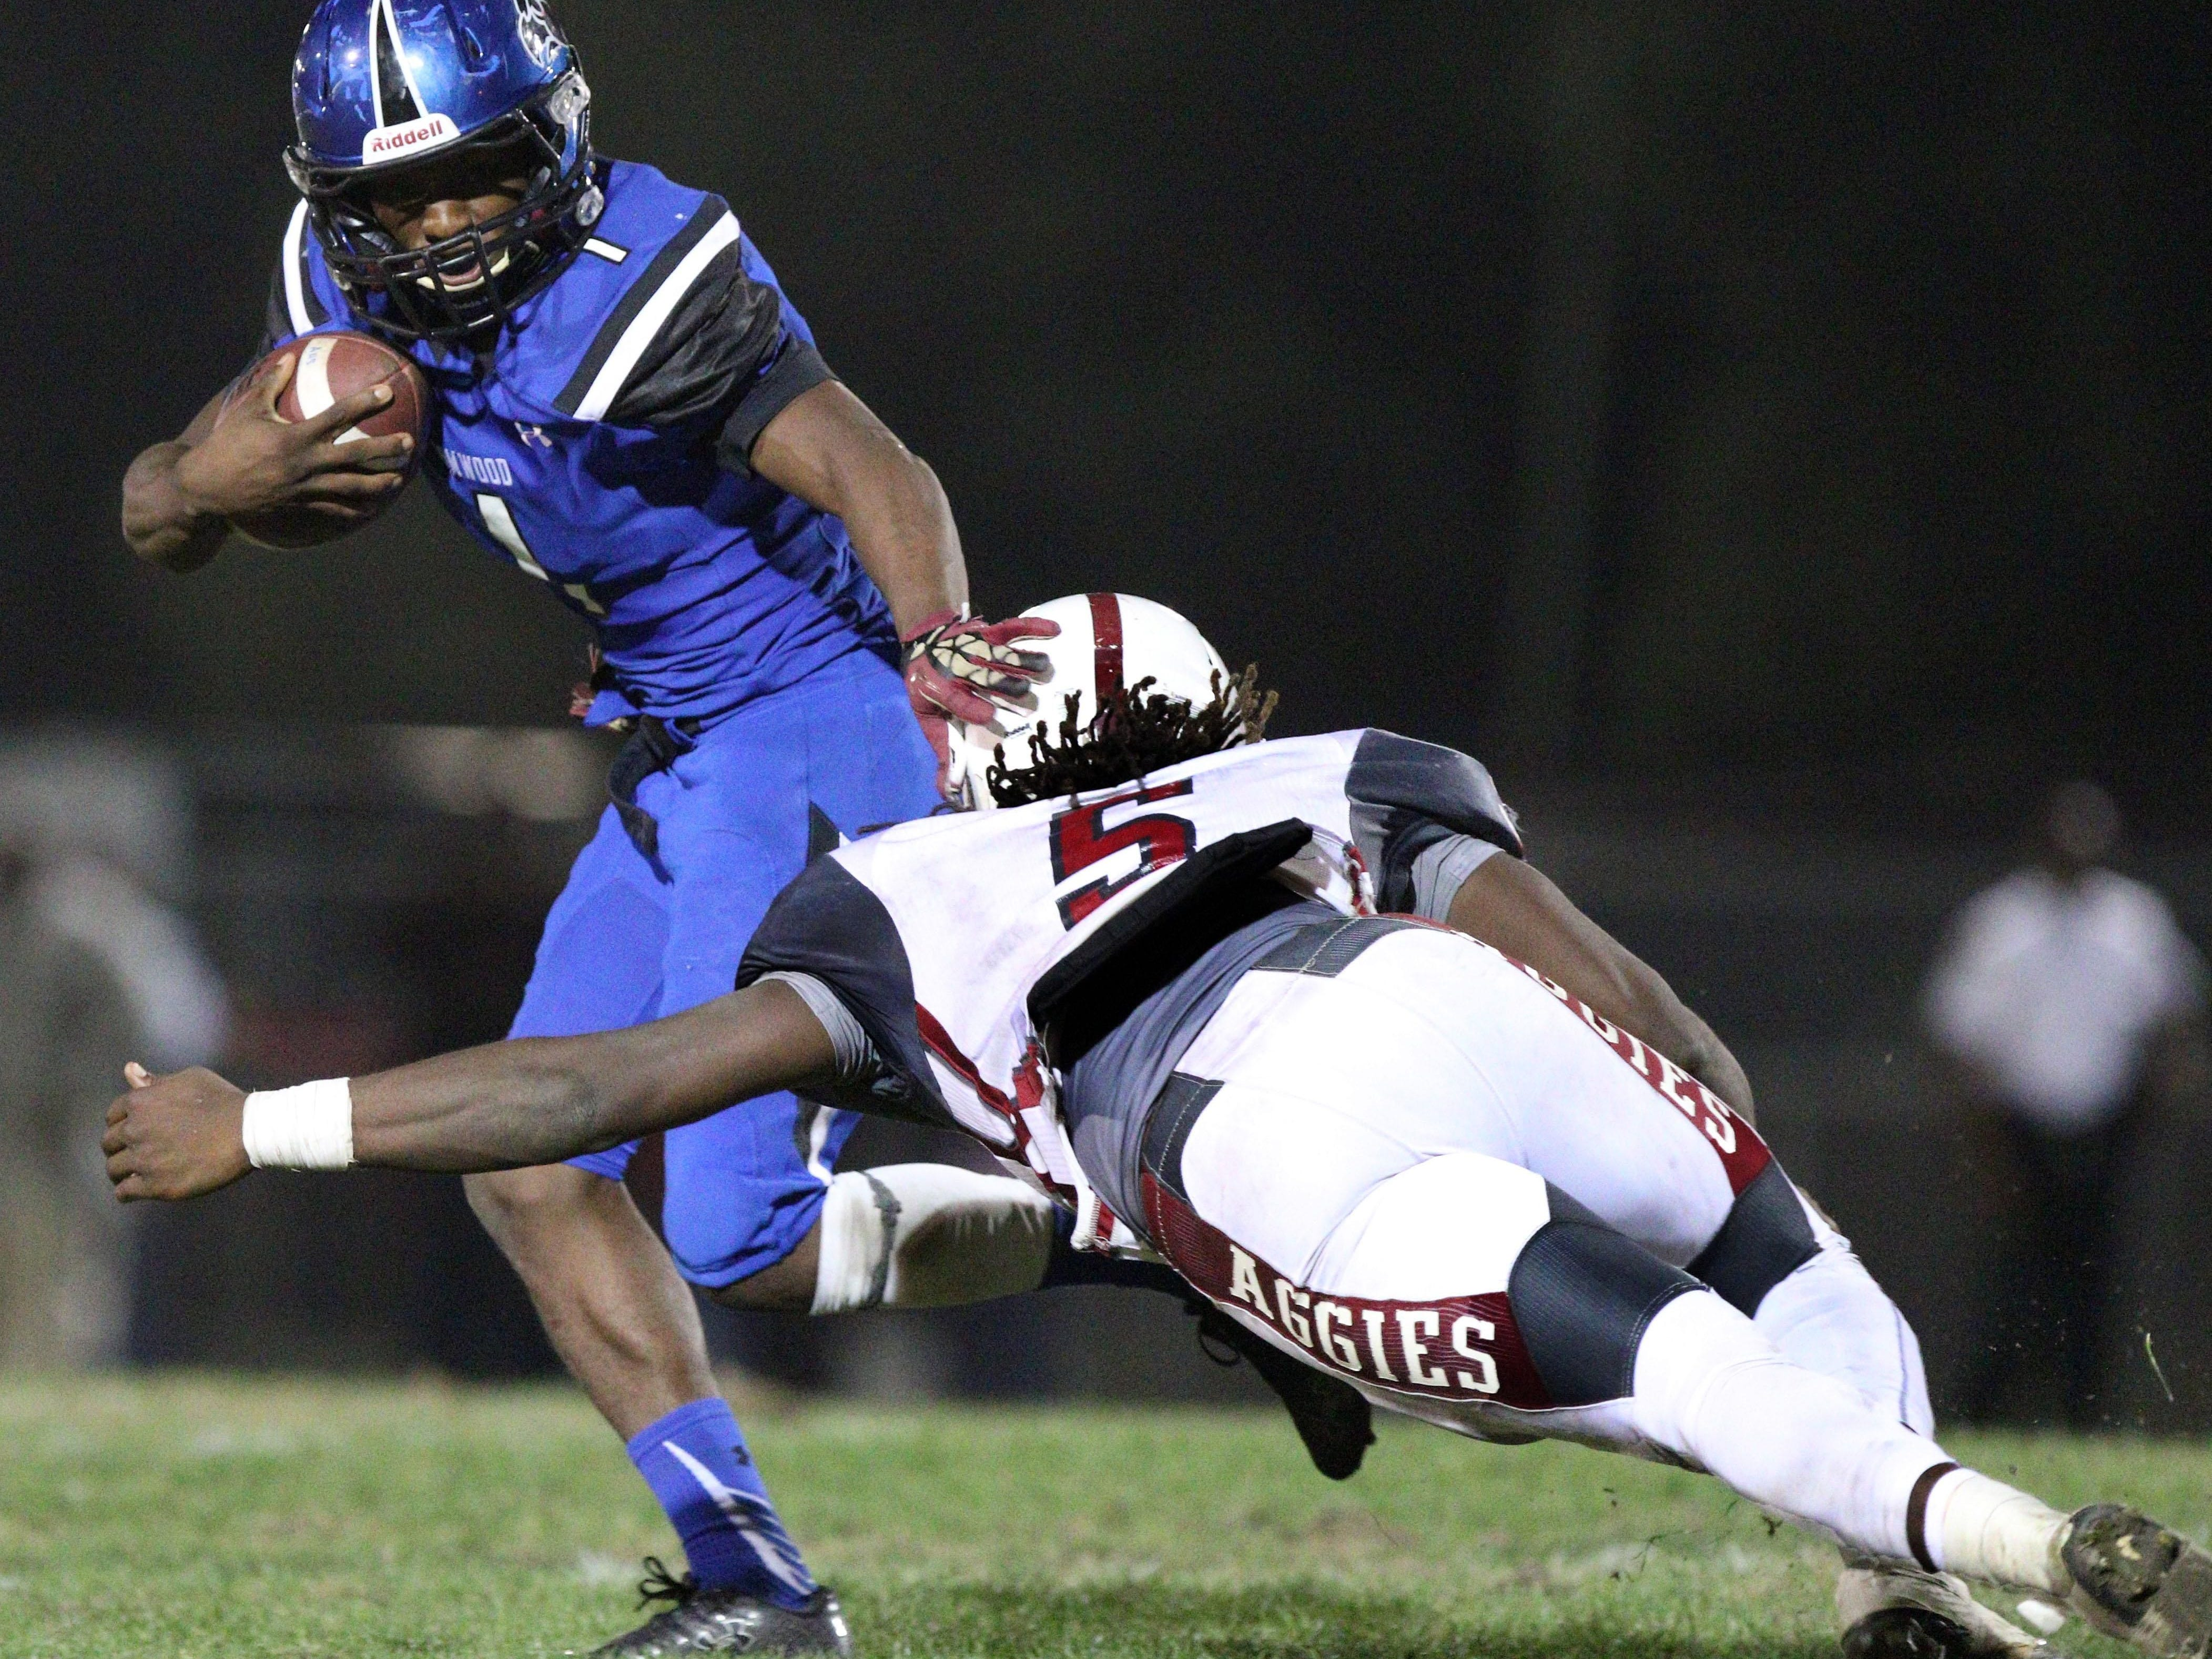 SEFFNER, FL. 12/4/2015 -- Armwood Hawks quarterback Darrian McNeal tries to escape the diving tackle of Tate defensive end Alonte Thompson during Friday's Class 6A state semifinals game at Lyle Flagg Field. The Hawks went on to defeat the Aggies 53-19 to advance to the stat title game Saturday in Orlando. Photo by BILL WARD/PNJ